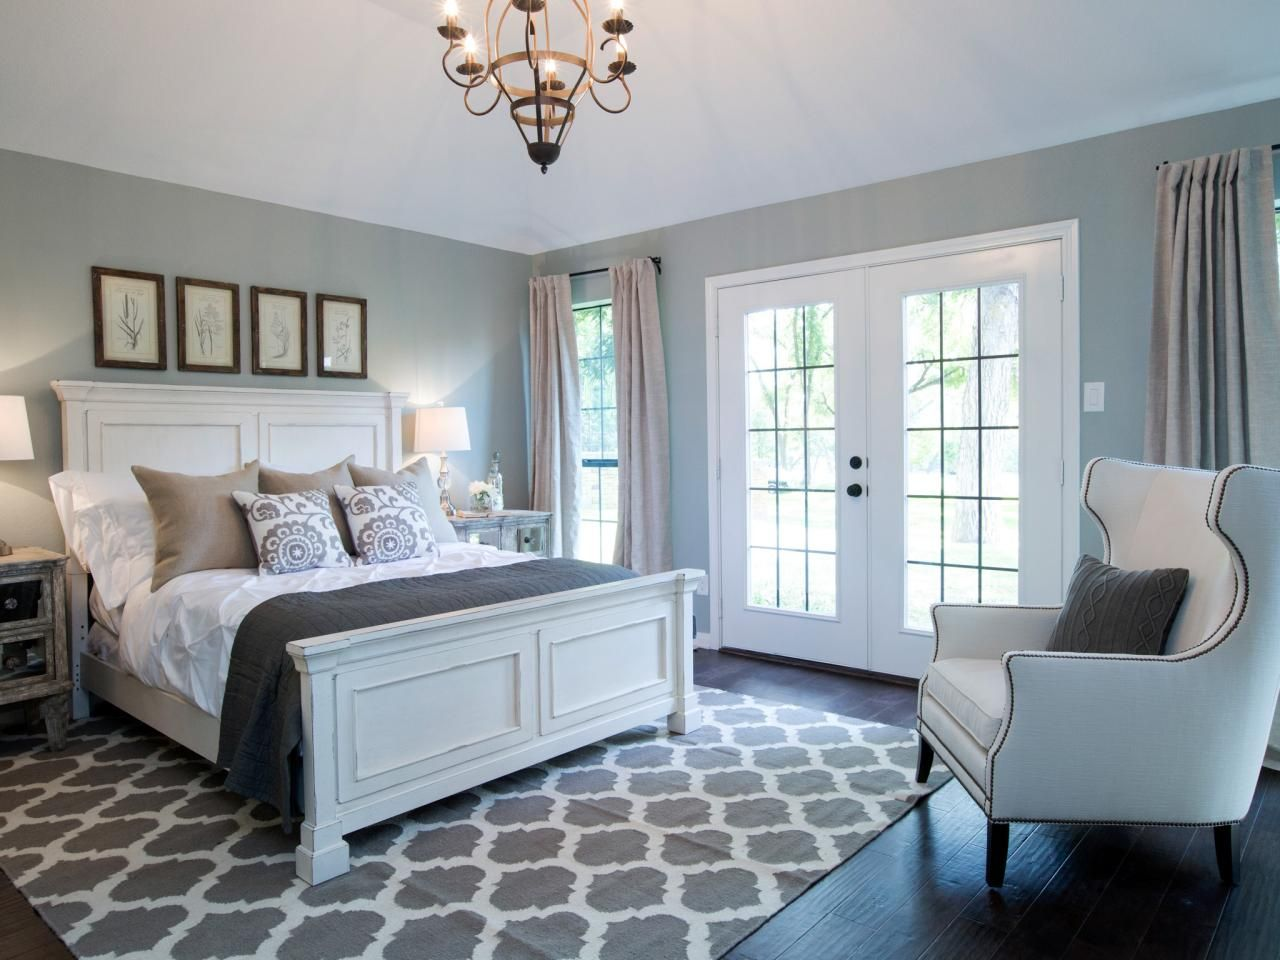 Merveilleux Pretty And Relaxing Master Bedroom By Fixer Upper. Farmhouse But Not Too  Country #bedroomdecor